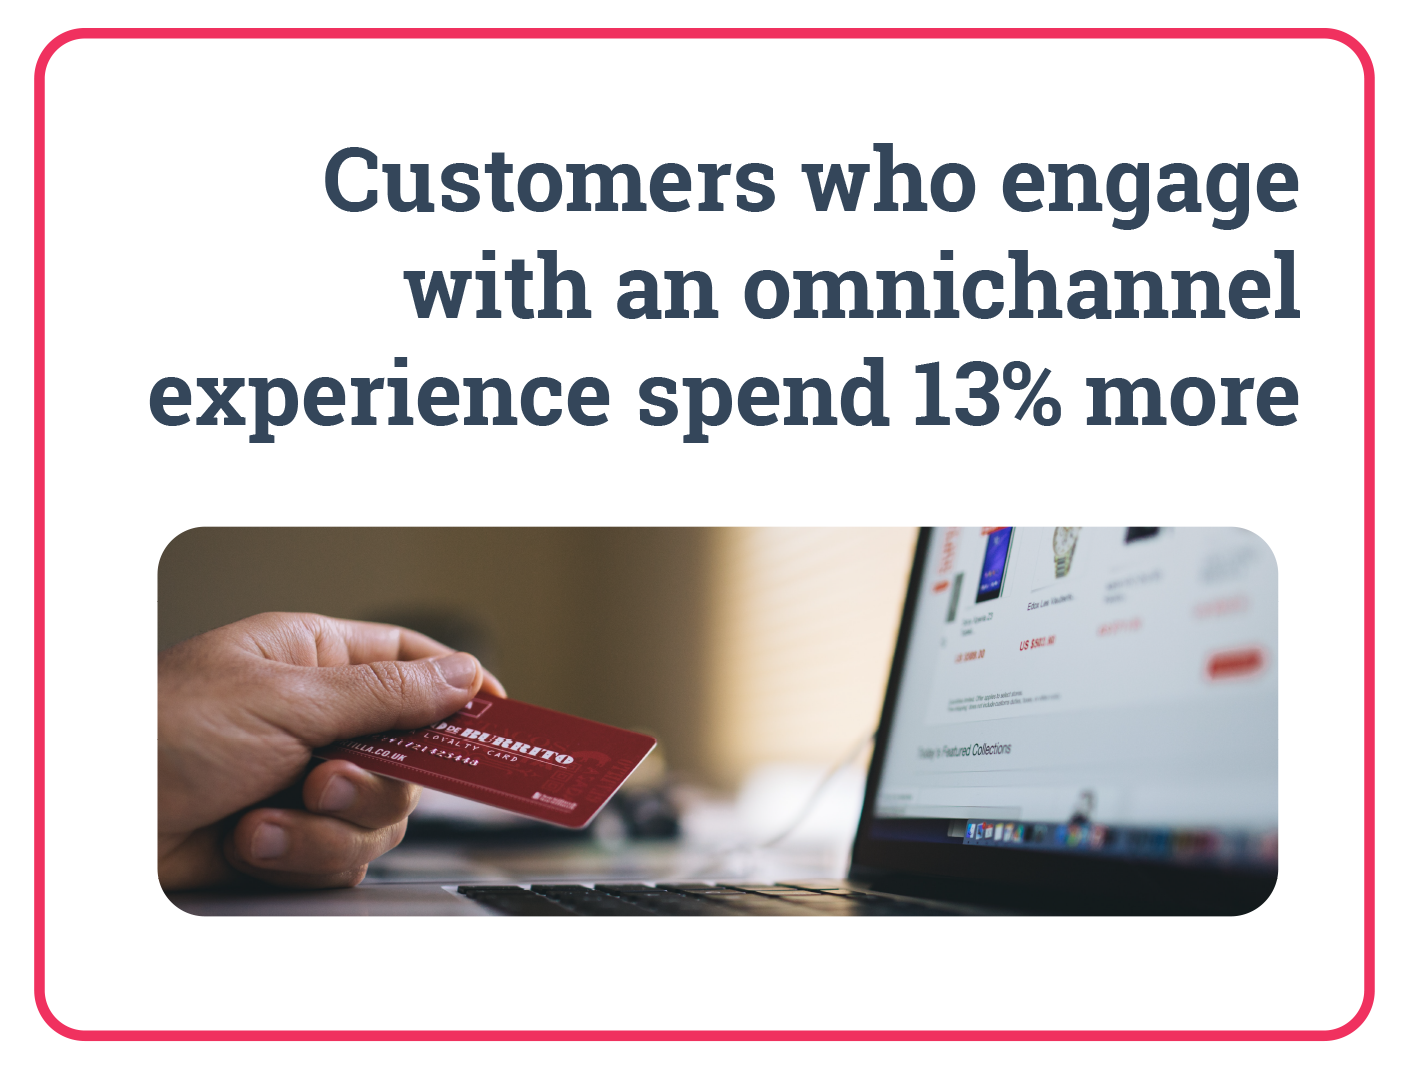 Customers who engage with an omnichannel experience spend 13% more. Data Integration.